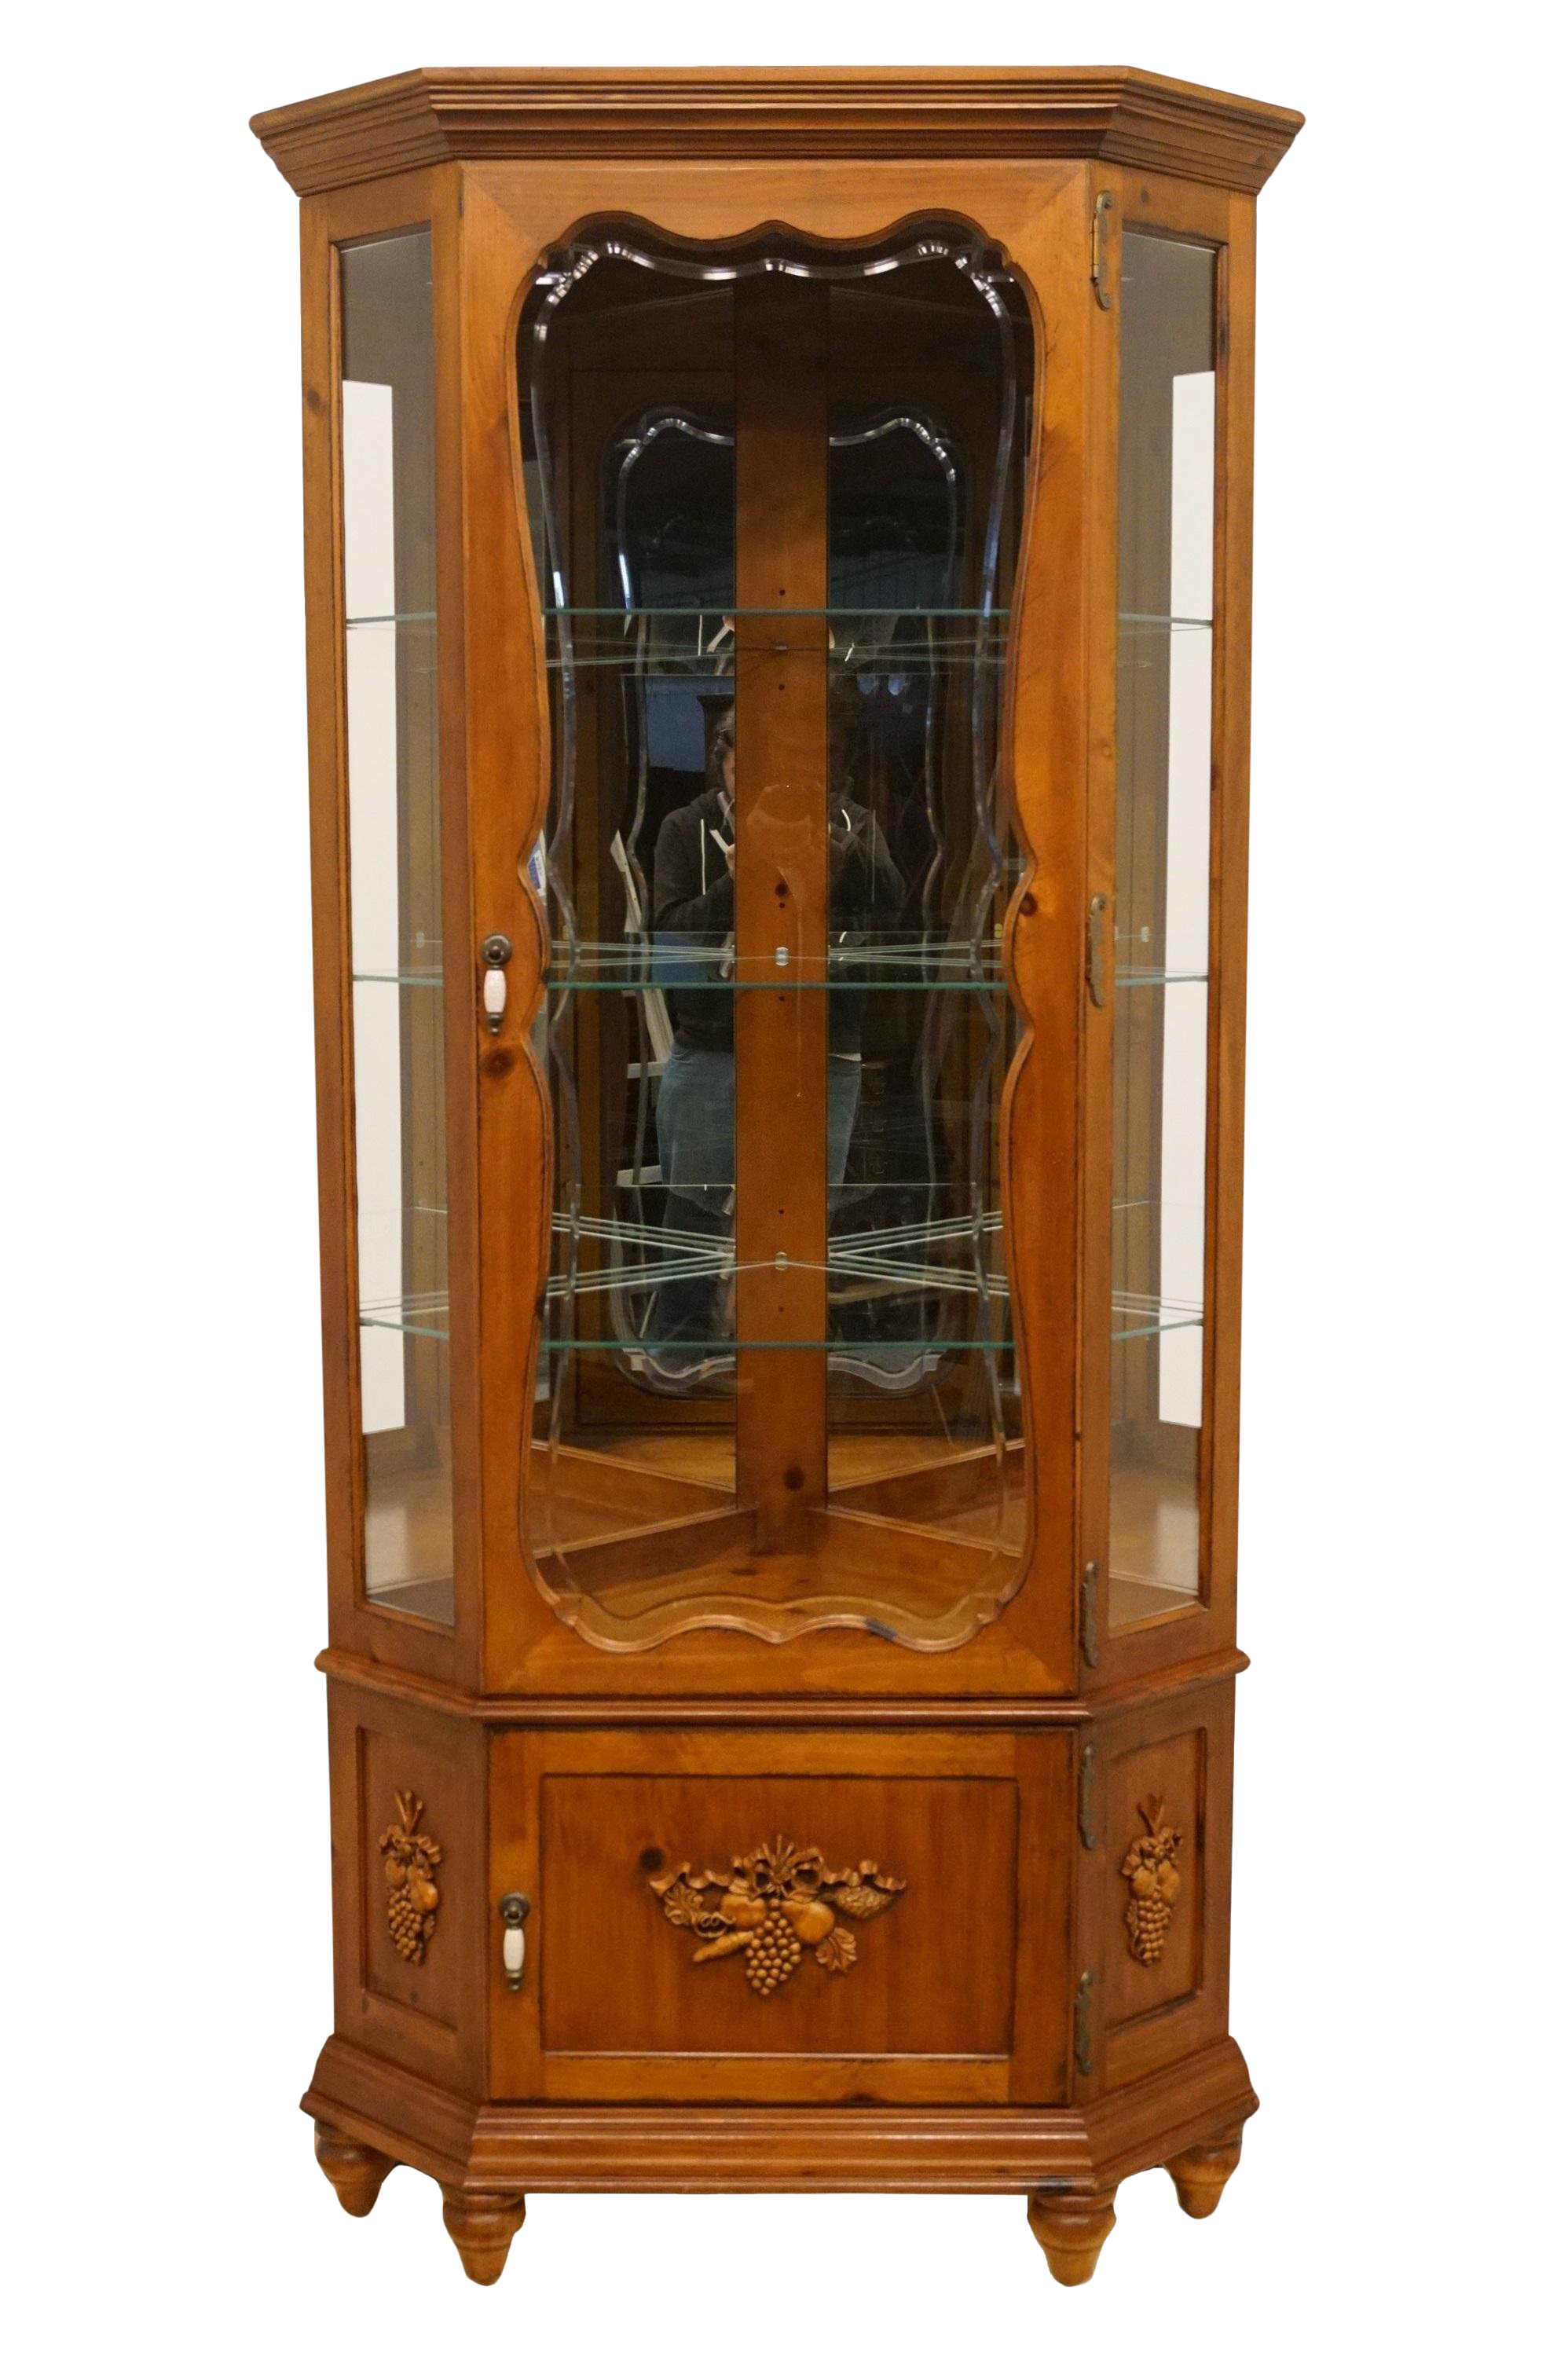 20th century french country pulaski furniture display curio cabinet chairish